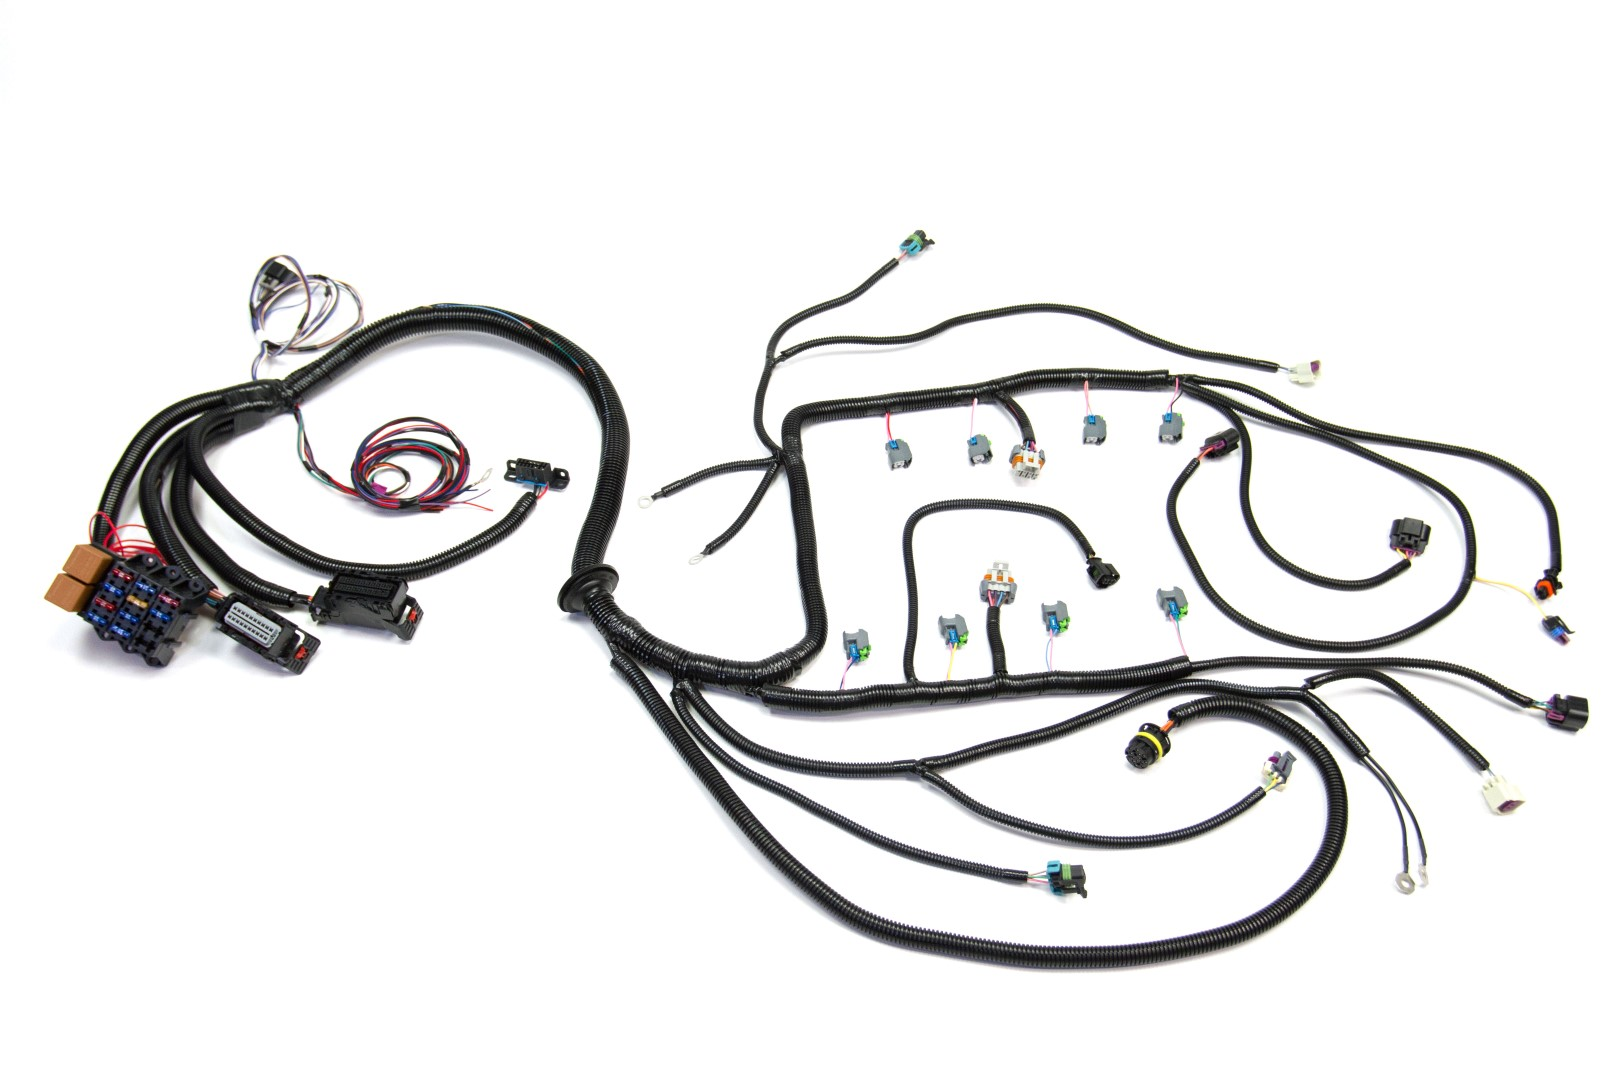 6l80e Wiring Free Diagram For You Toyota Noah 08 14 Ls3 6 2l Standalone Harness W Zero Gravity Rh Zerogravityperformance Com 4l60e